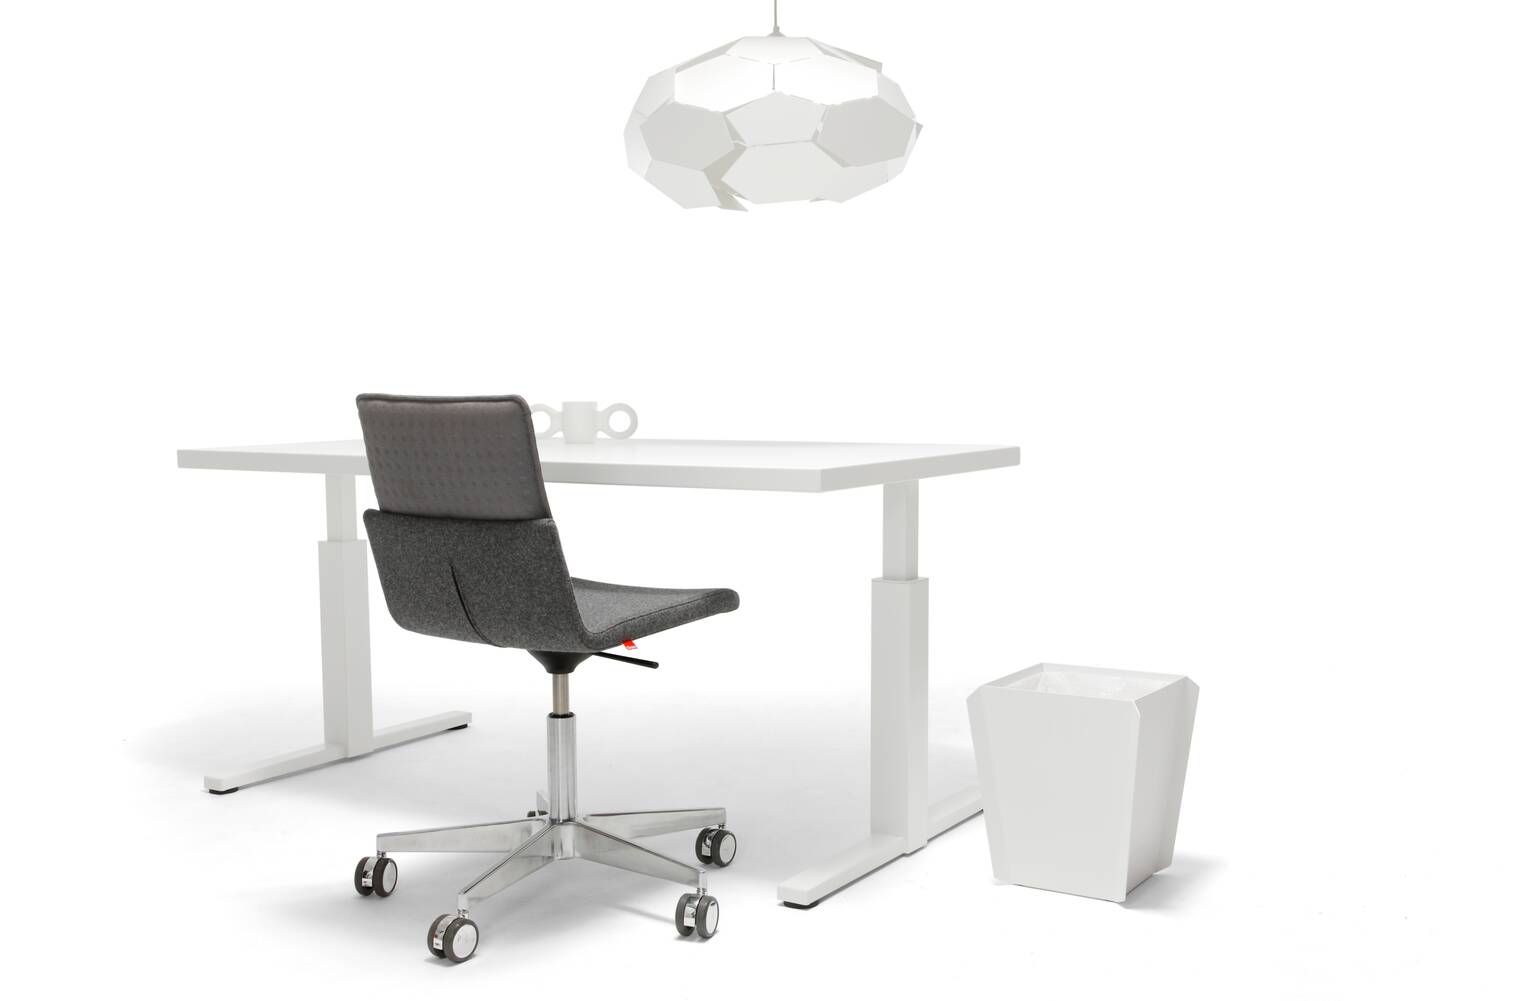 Gispen SteelTop T legged table with pure white RAL 9010 frame and tabletop and Triennial Work office chair with white Binit wastebin and Thunderball pendant lamp front right view